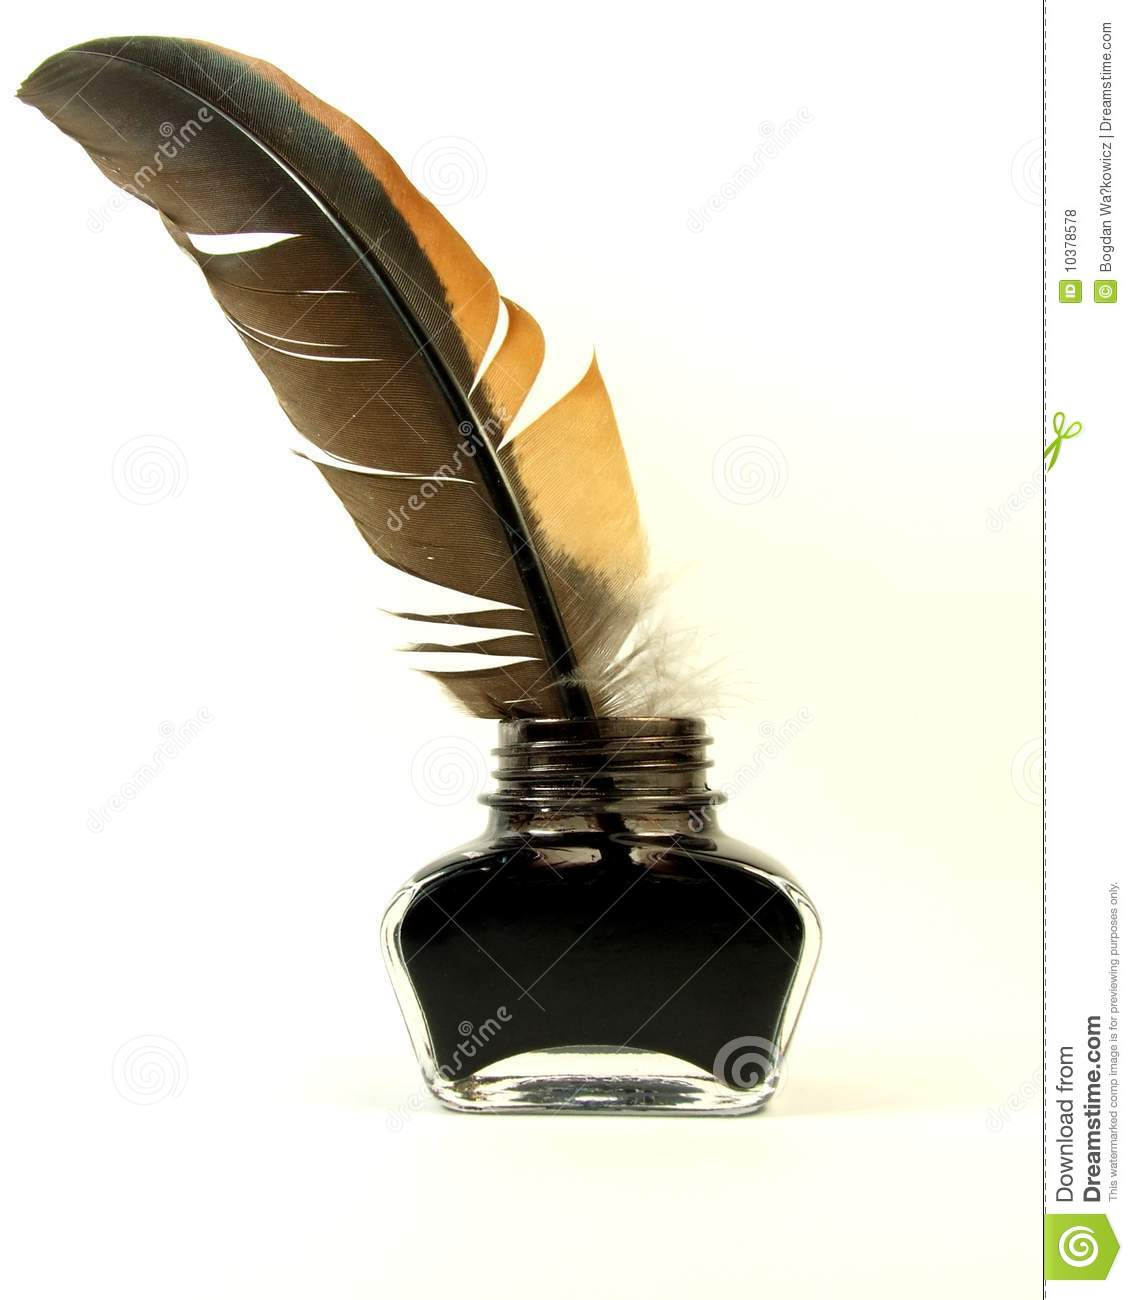 Royalty Free Stock Photos Inkwell Quill Image10378578 on Latest Parchment Writing Paper